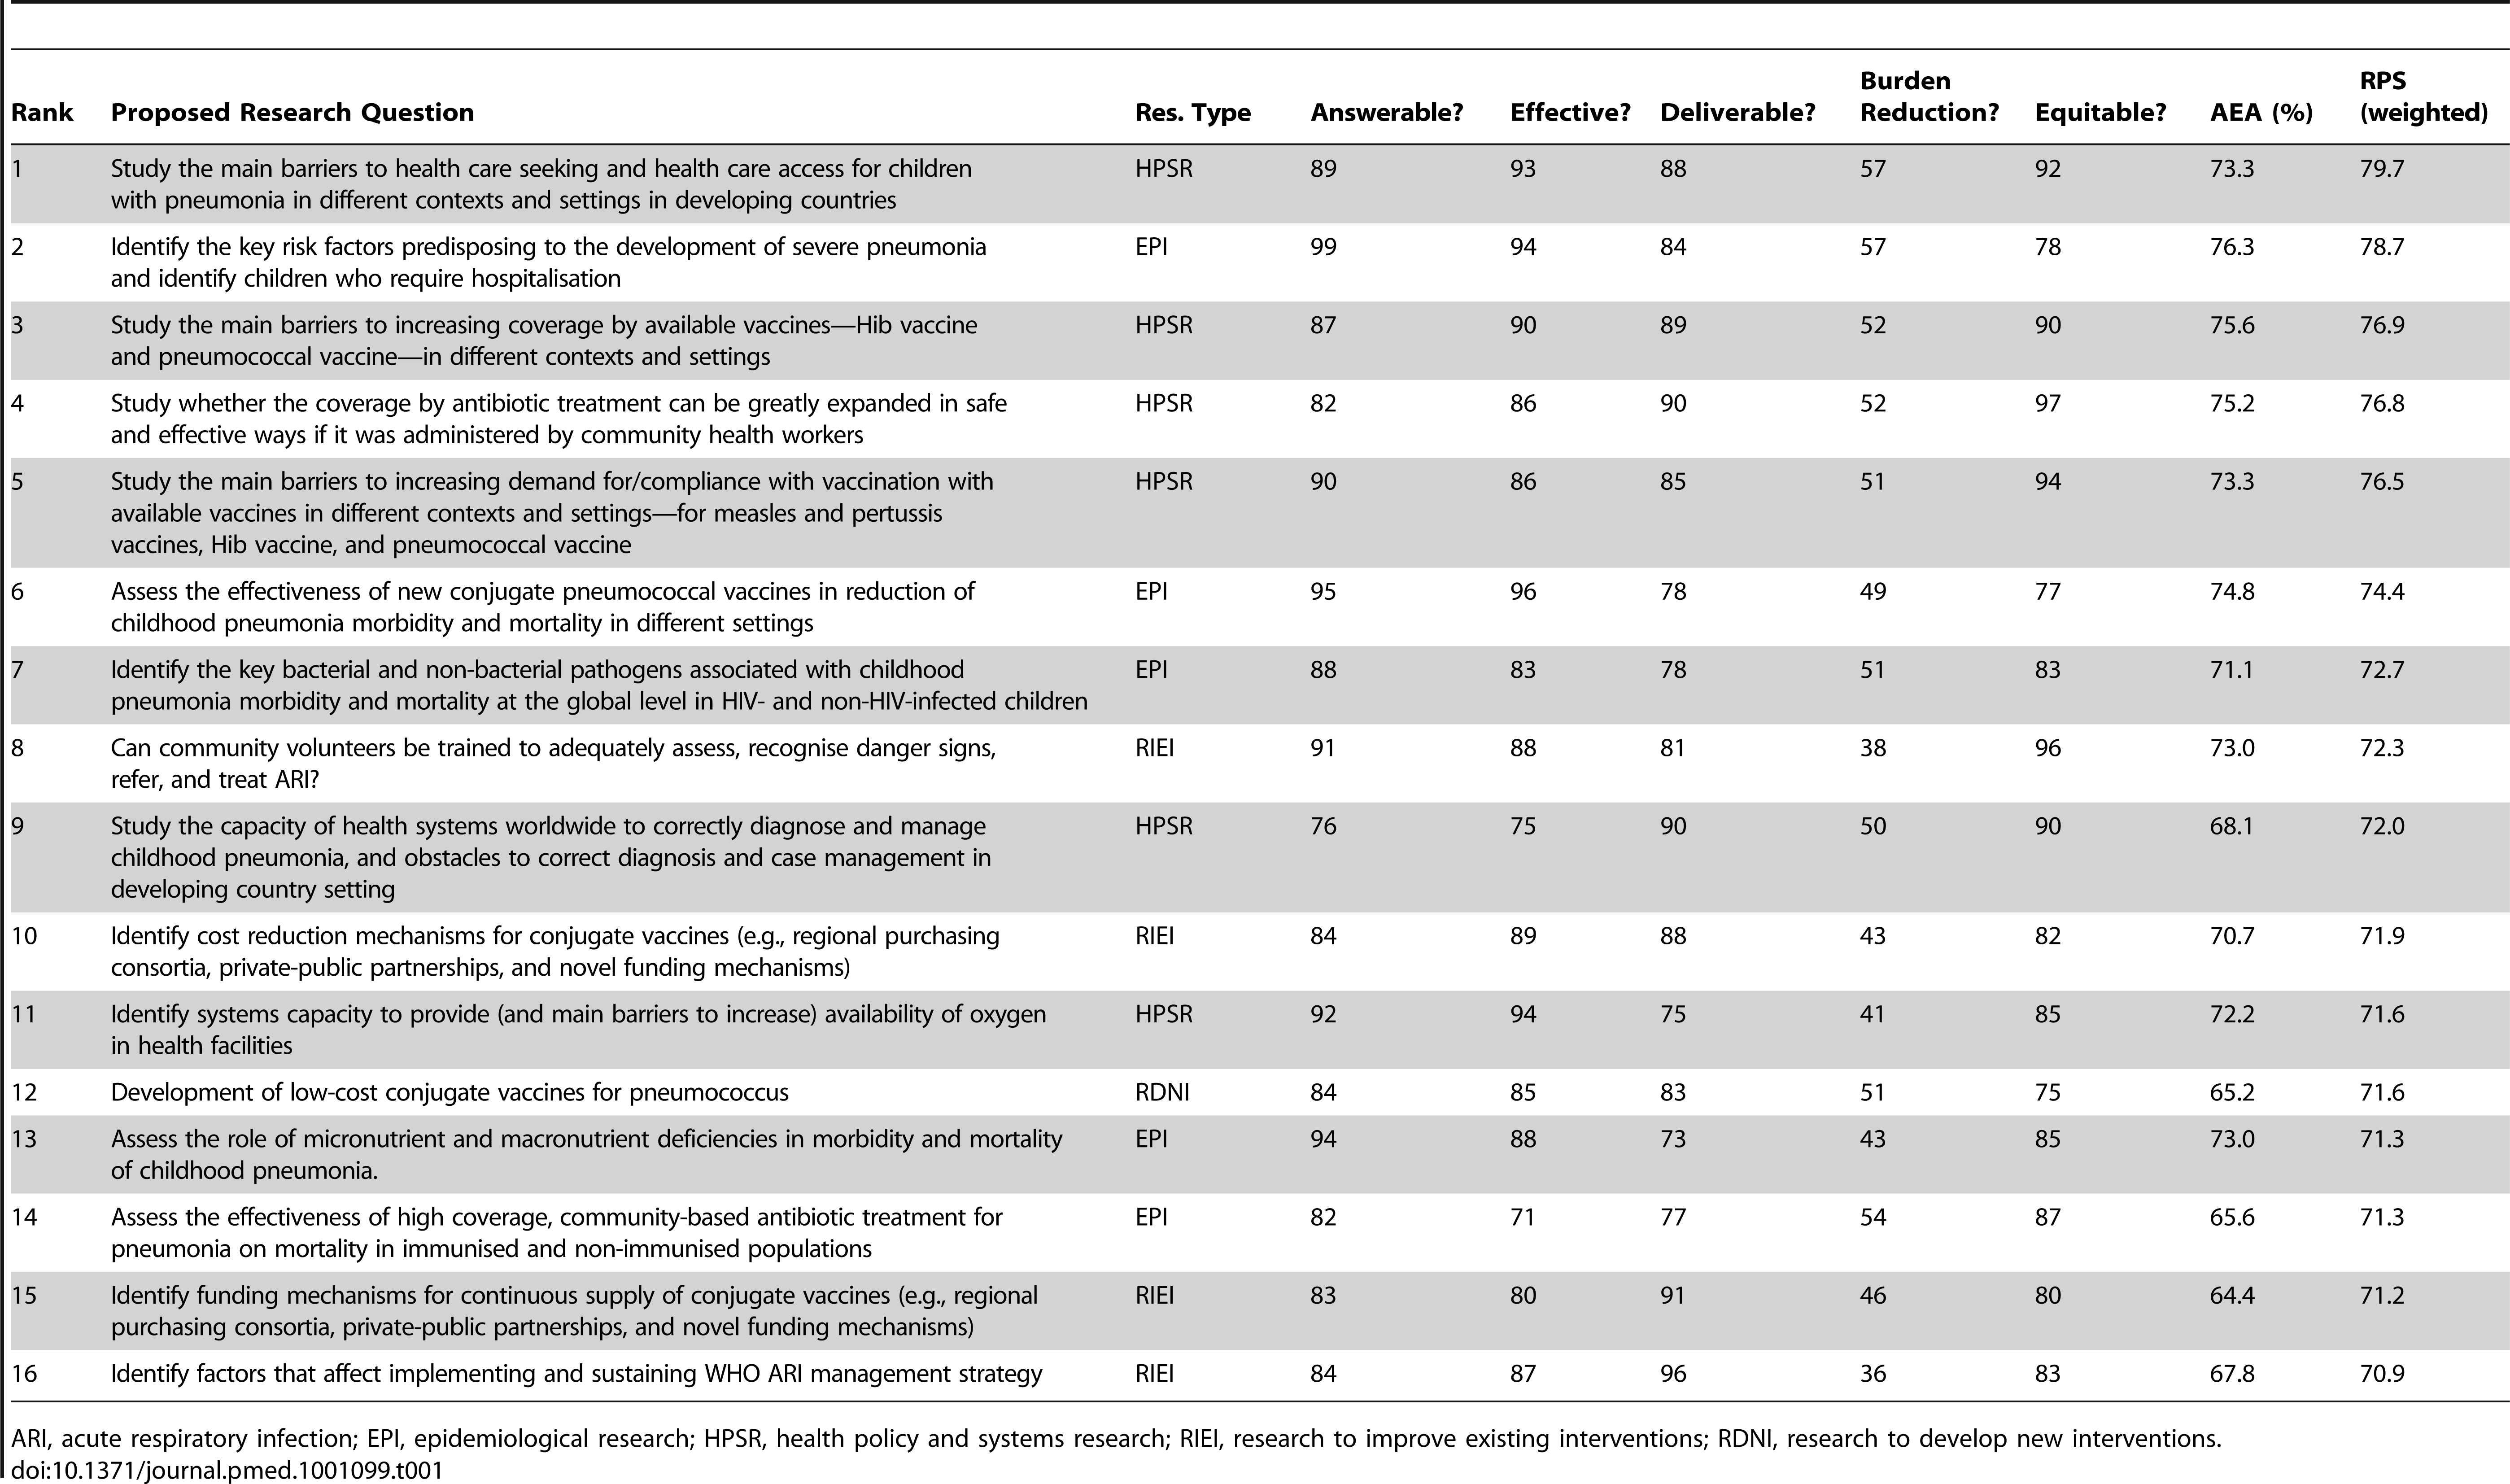 The top 10% of research questions according to their achieved research priority score (RPS), with average expert agreement (AEA) related to each question.